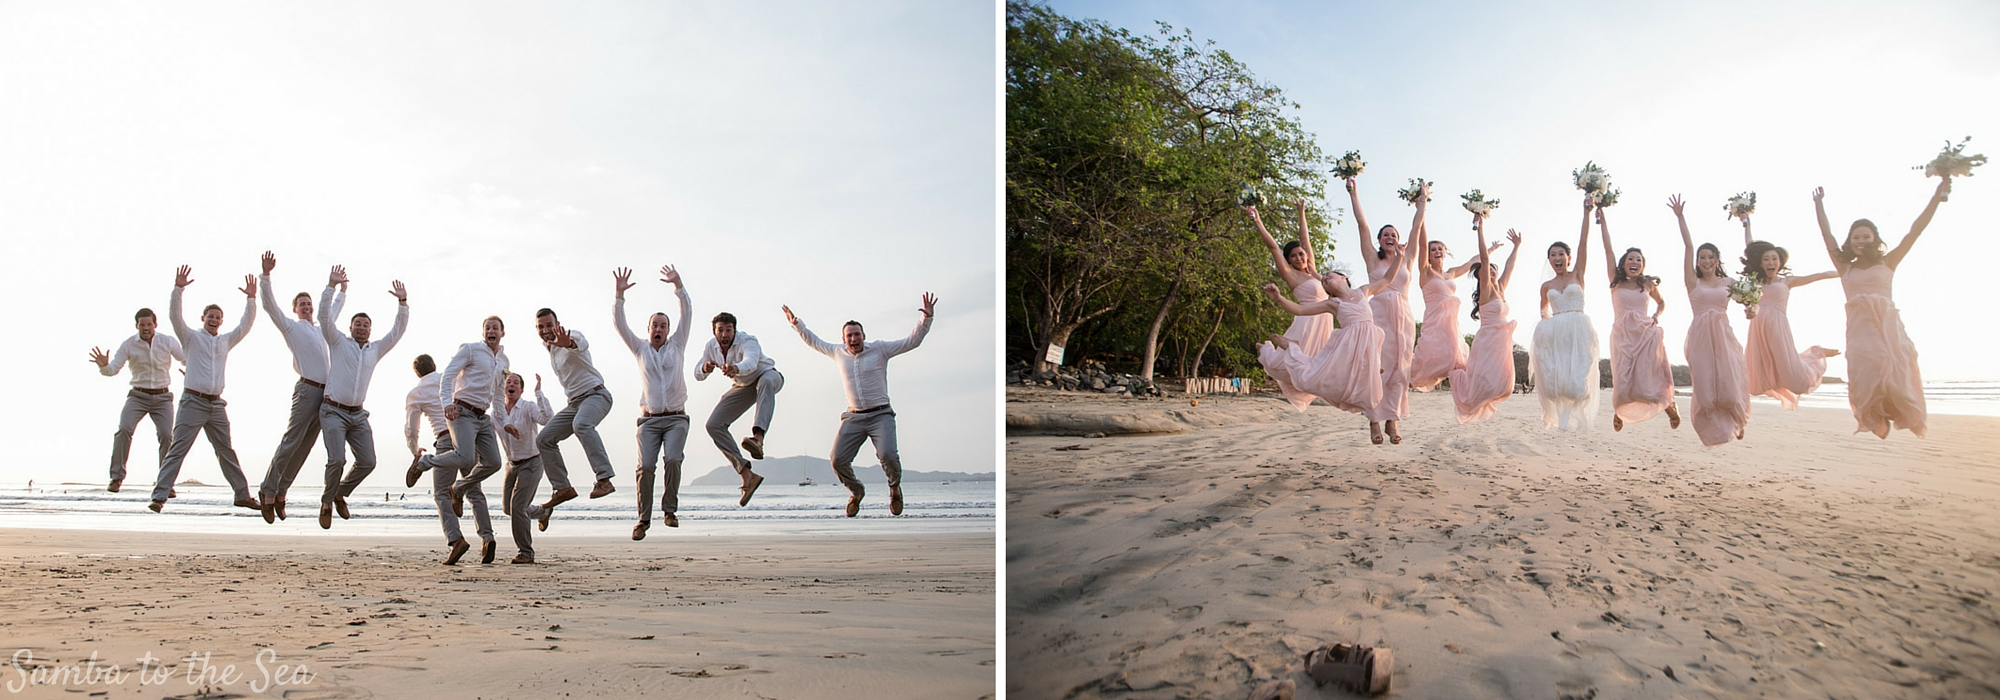 Wedding party jumping on the beach after wedding in Tamarindo, Costa Rica. Photographed by Kristen M. Brown, Samba to the Sea Photography.